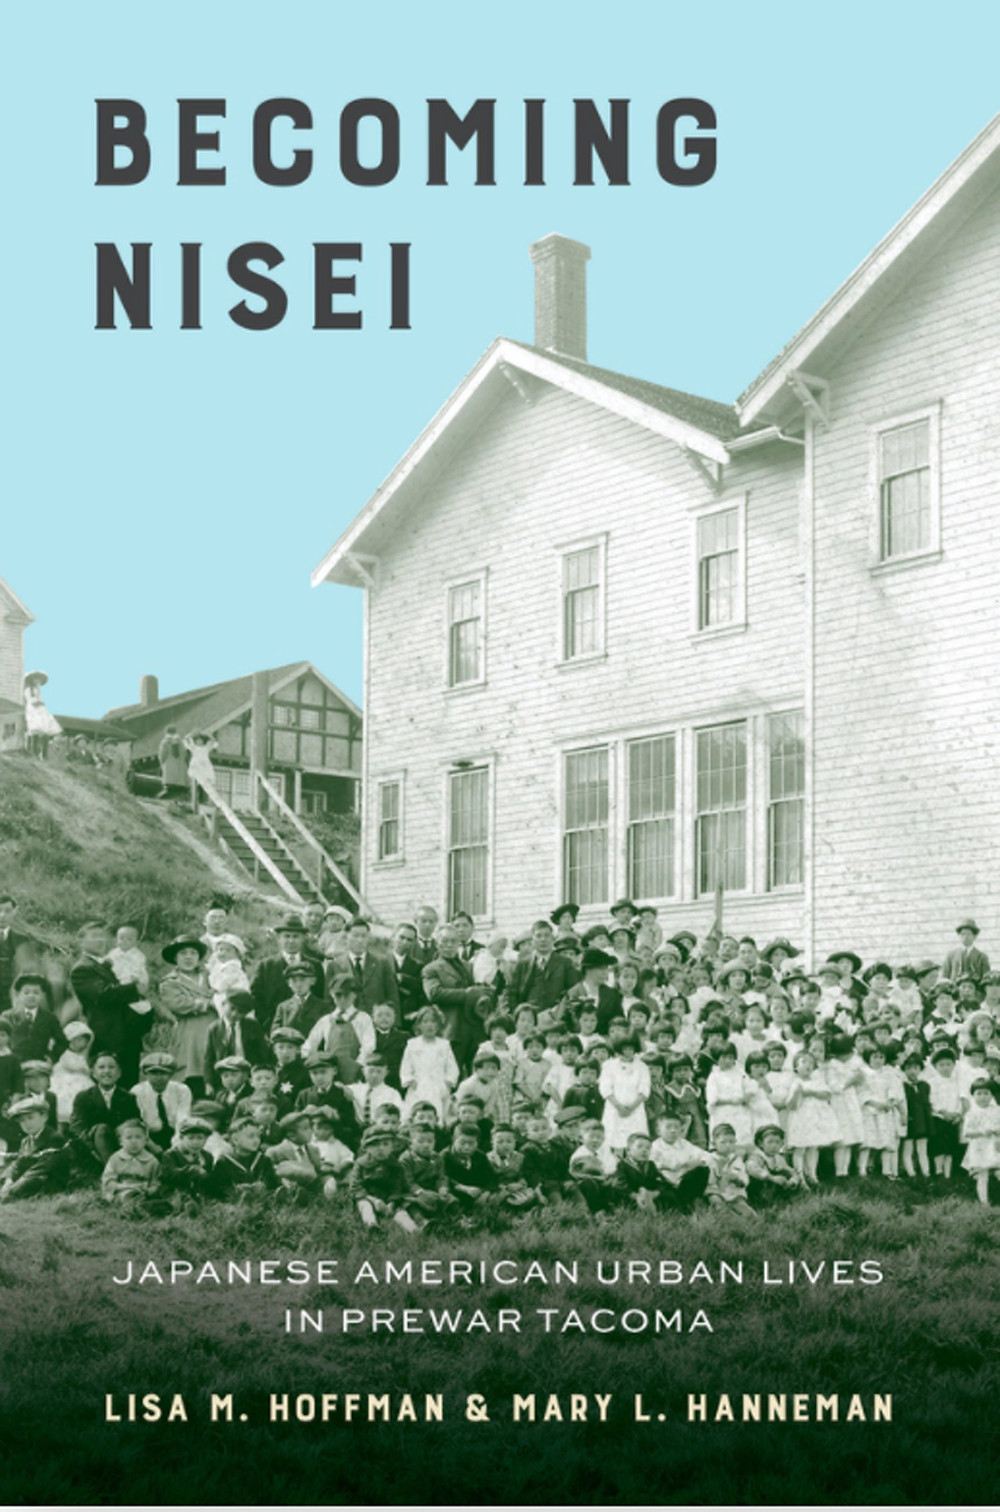 Cover photo of book Becoming Nisei